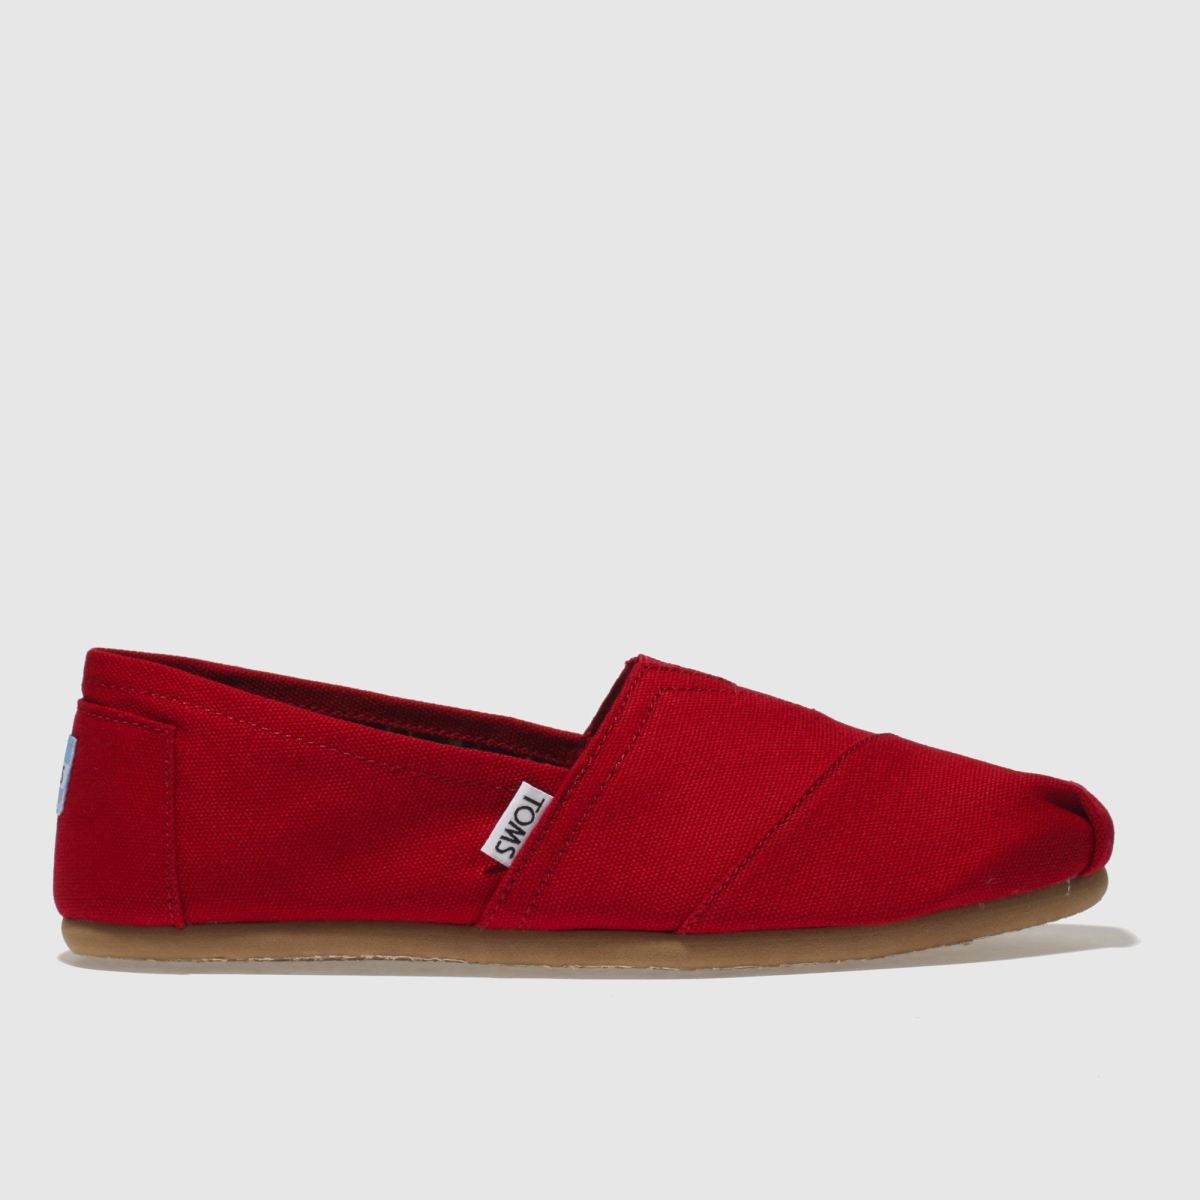 Toms Red Classic Slip Flat Shoes